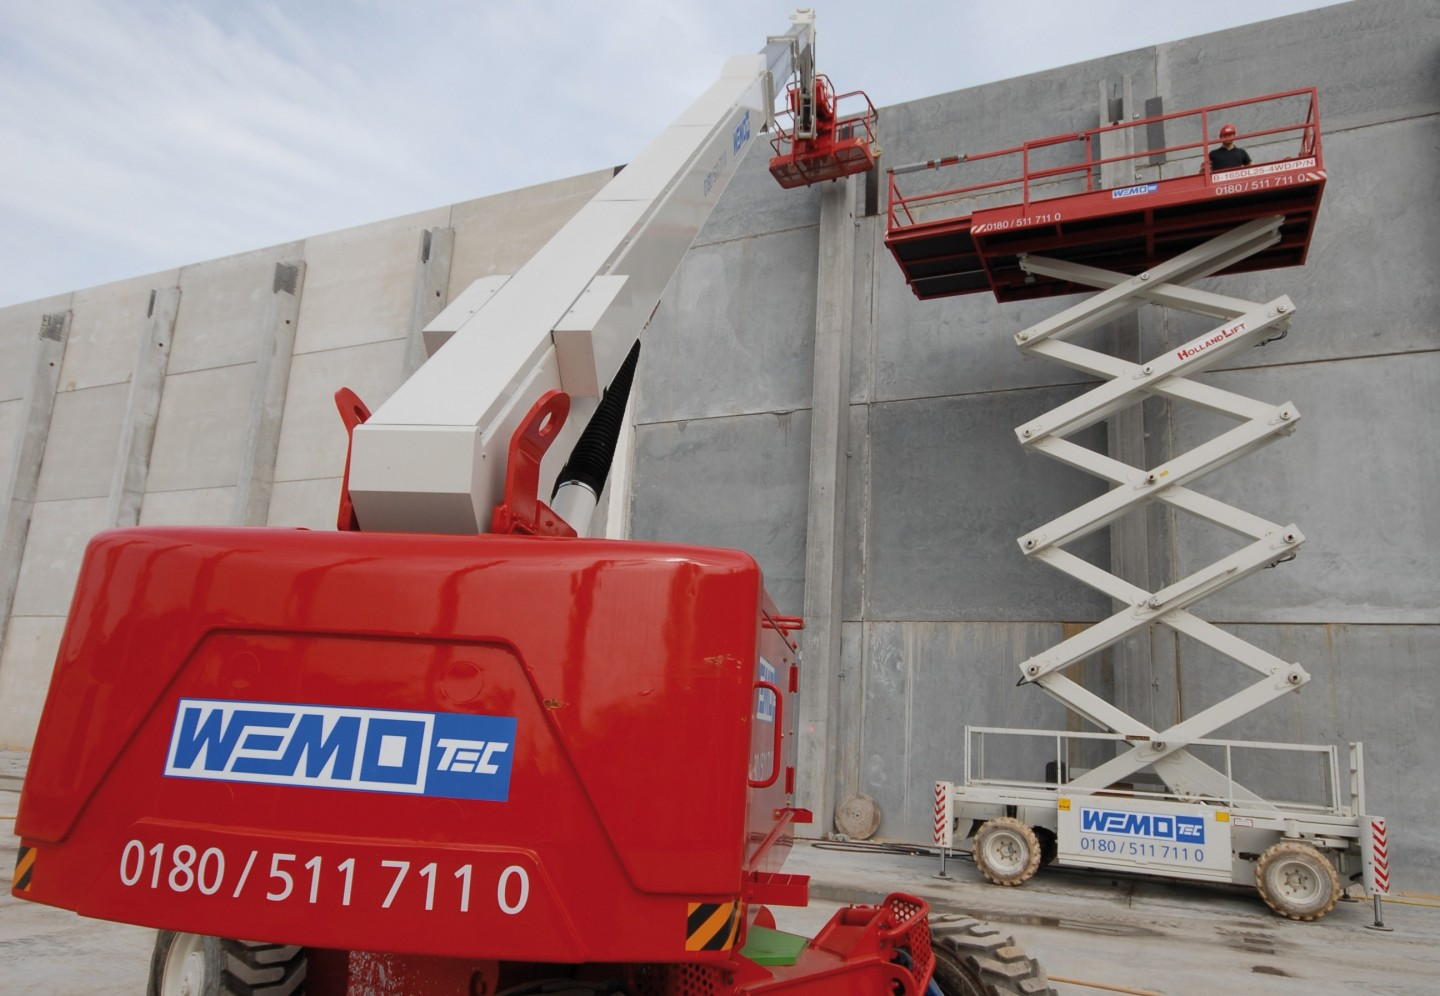 WEMO-tec work platform rental equipment